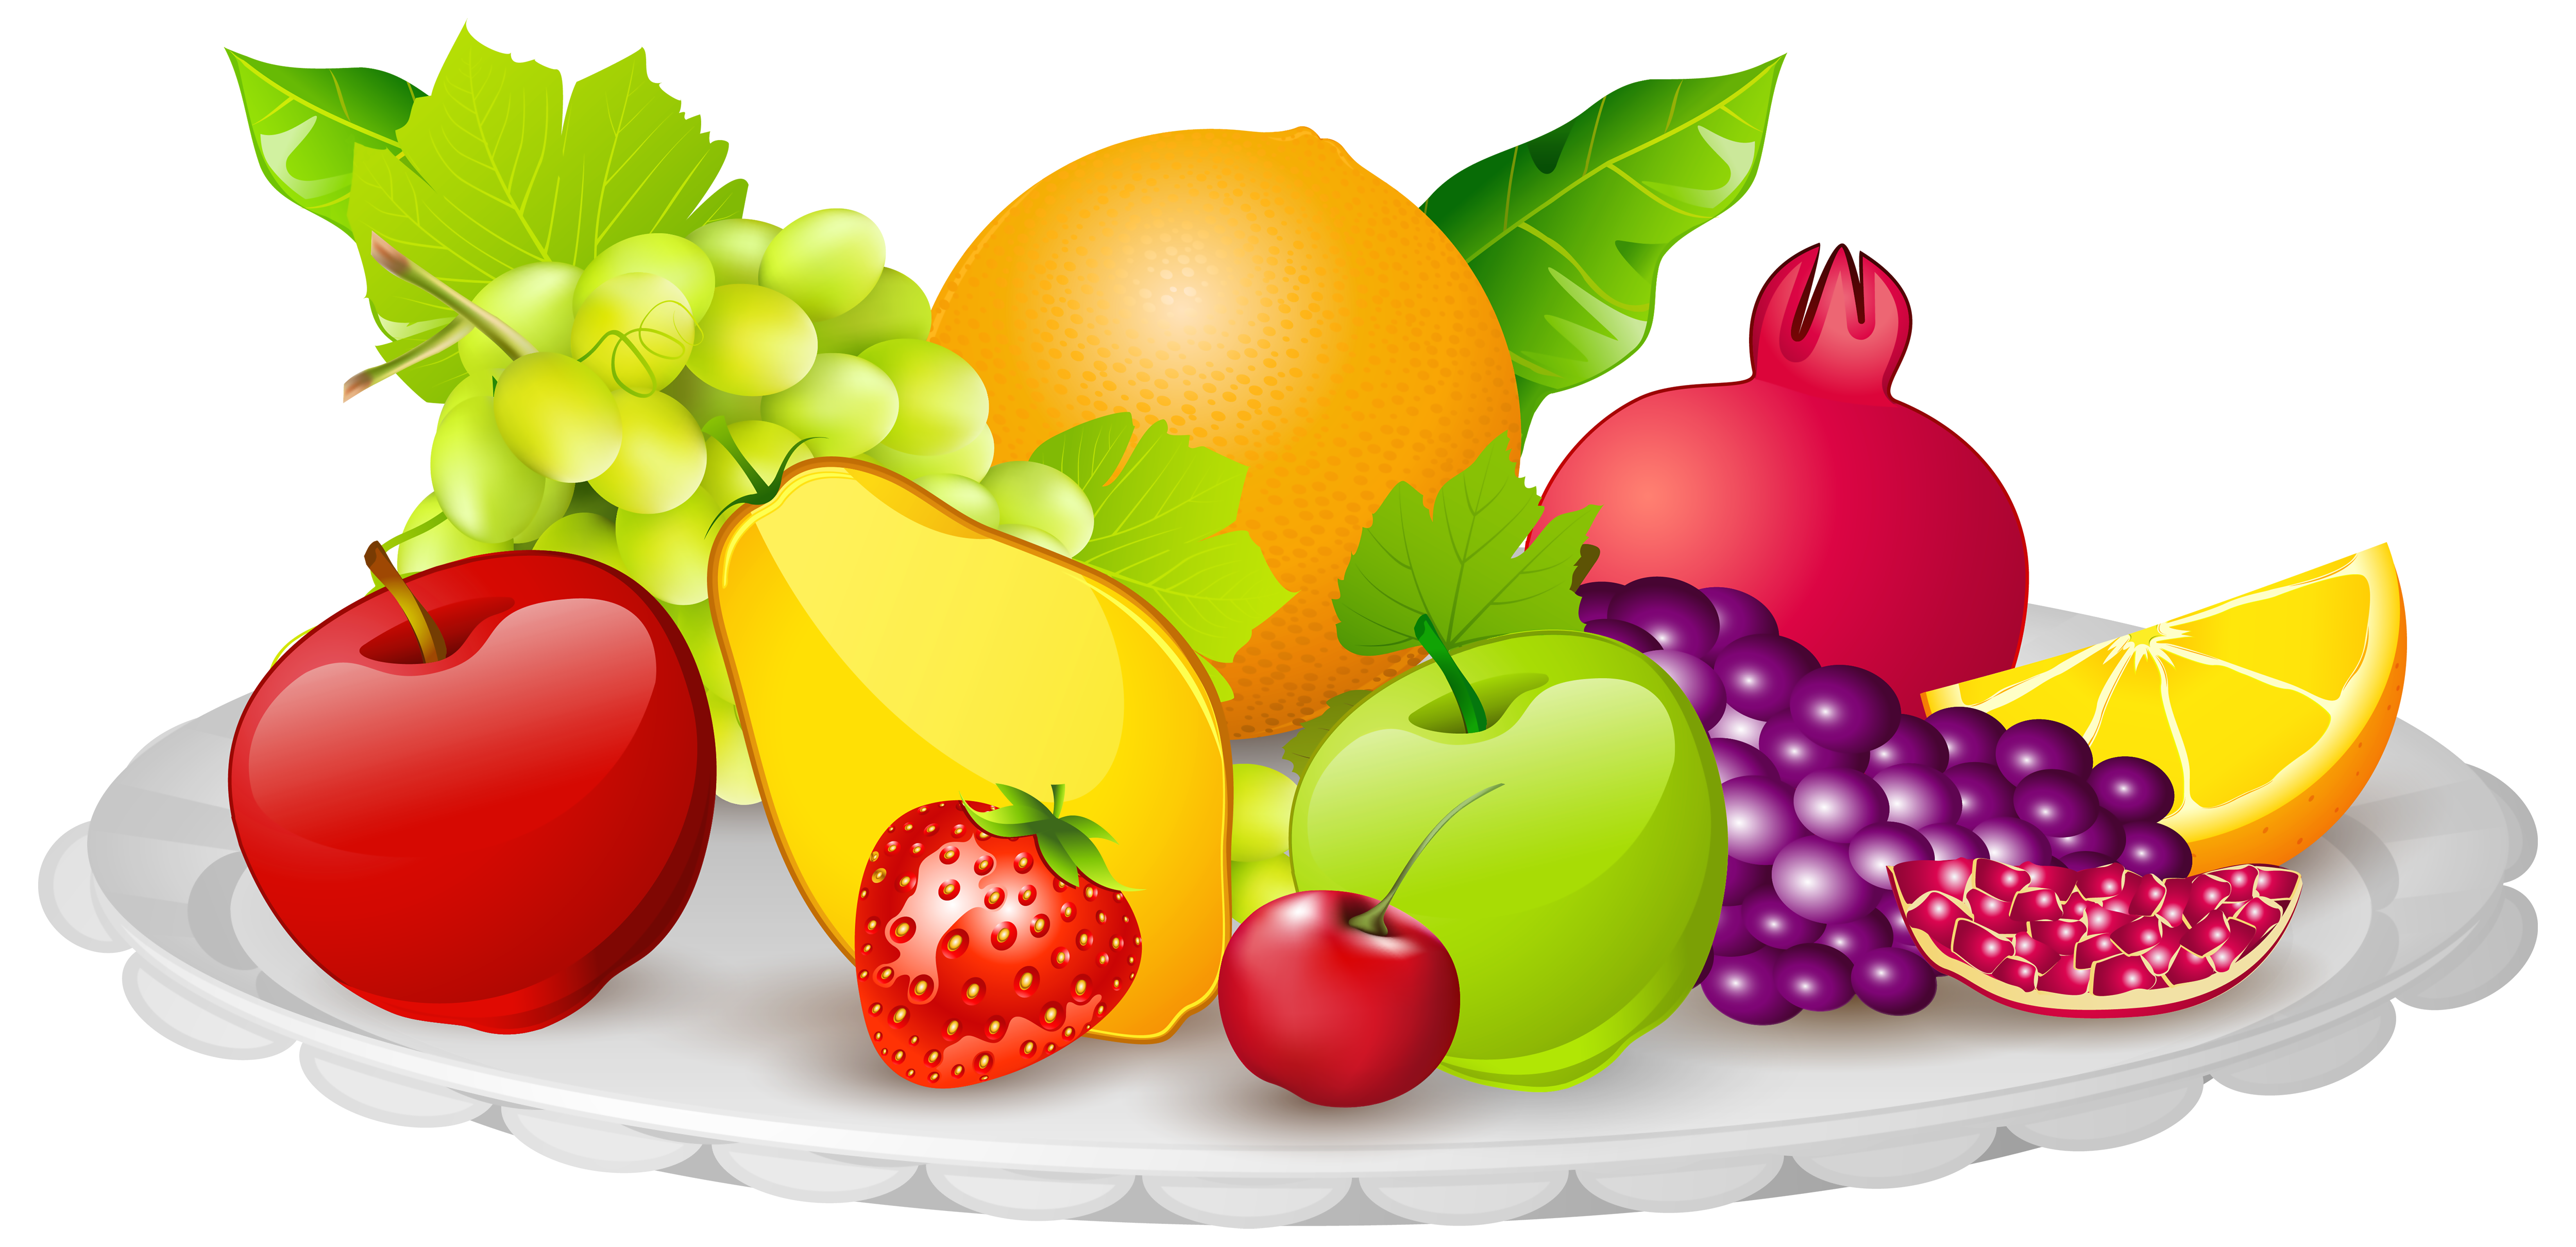 Plate with fruits.